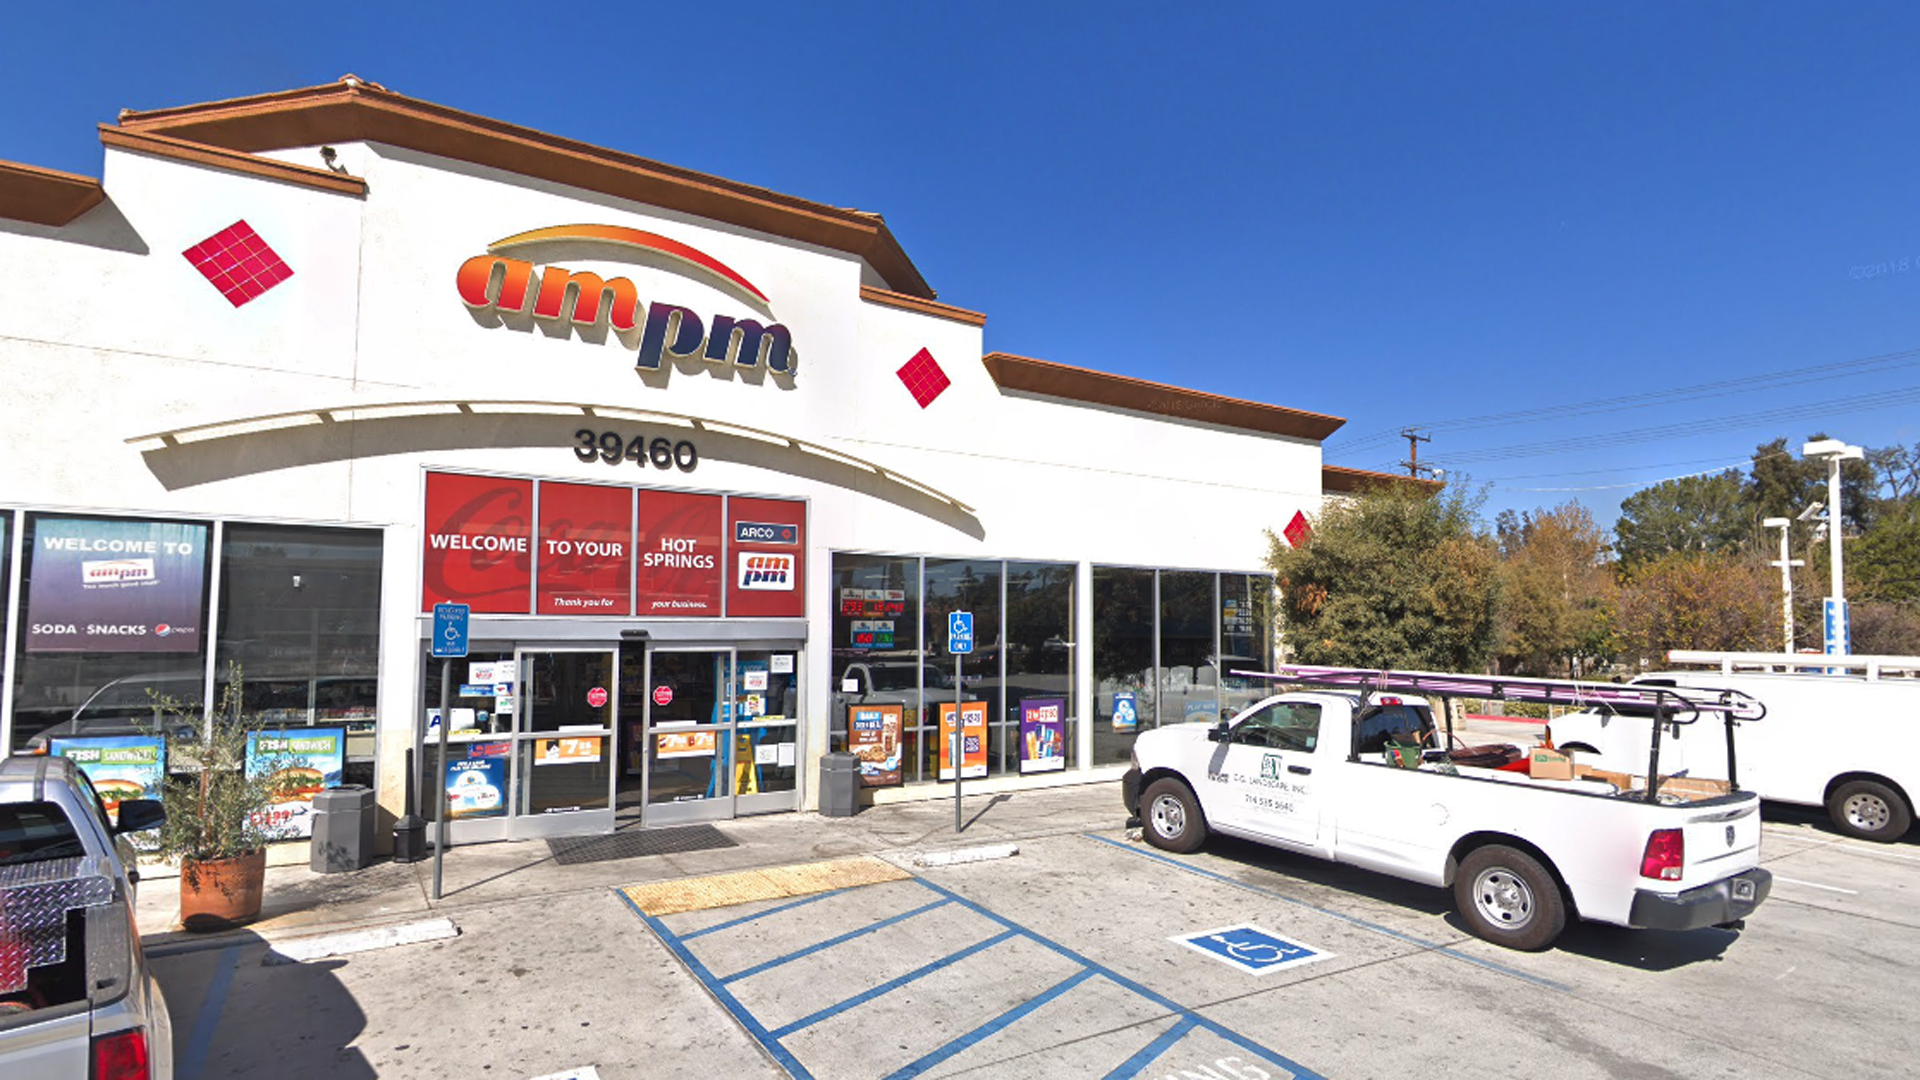 The ampm in Murrieta where a winning lottery ticket was sold is seen in a Google Maps Street View image from February 2018.